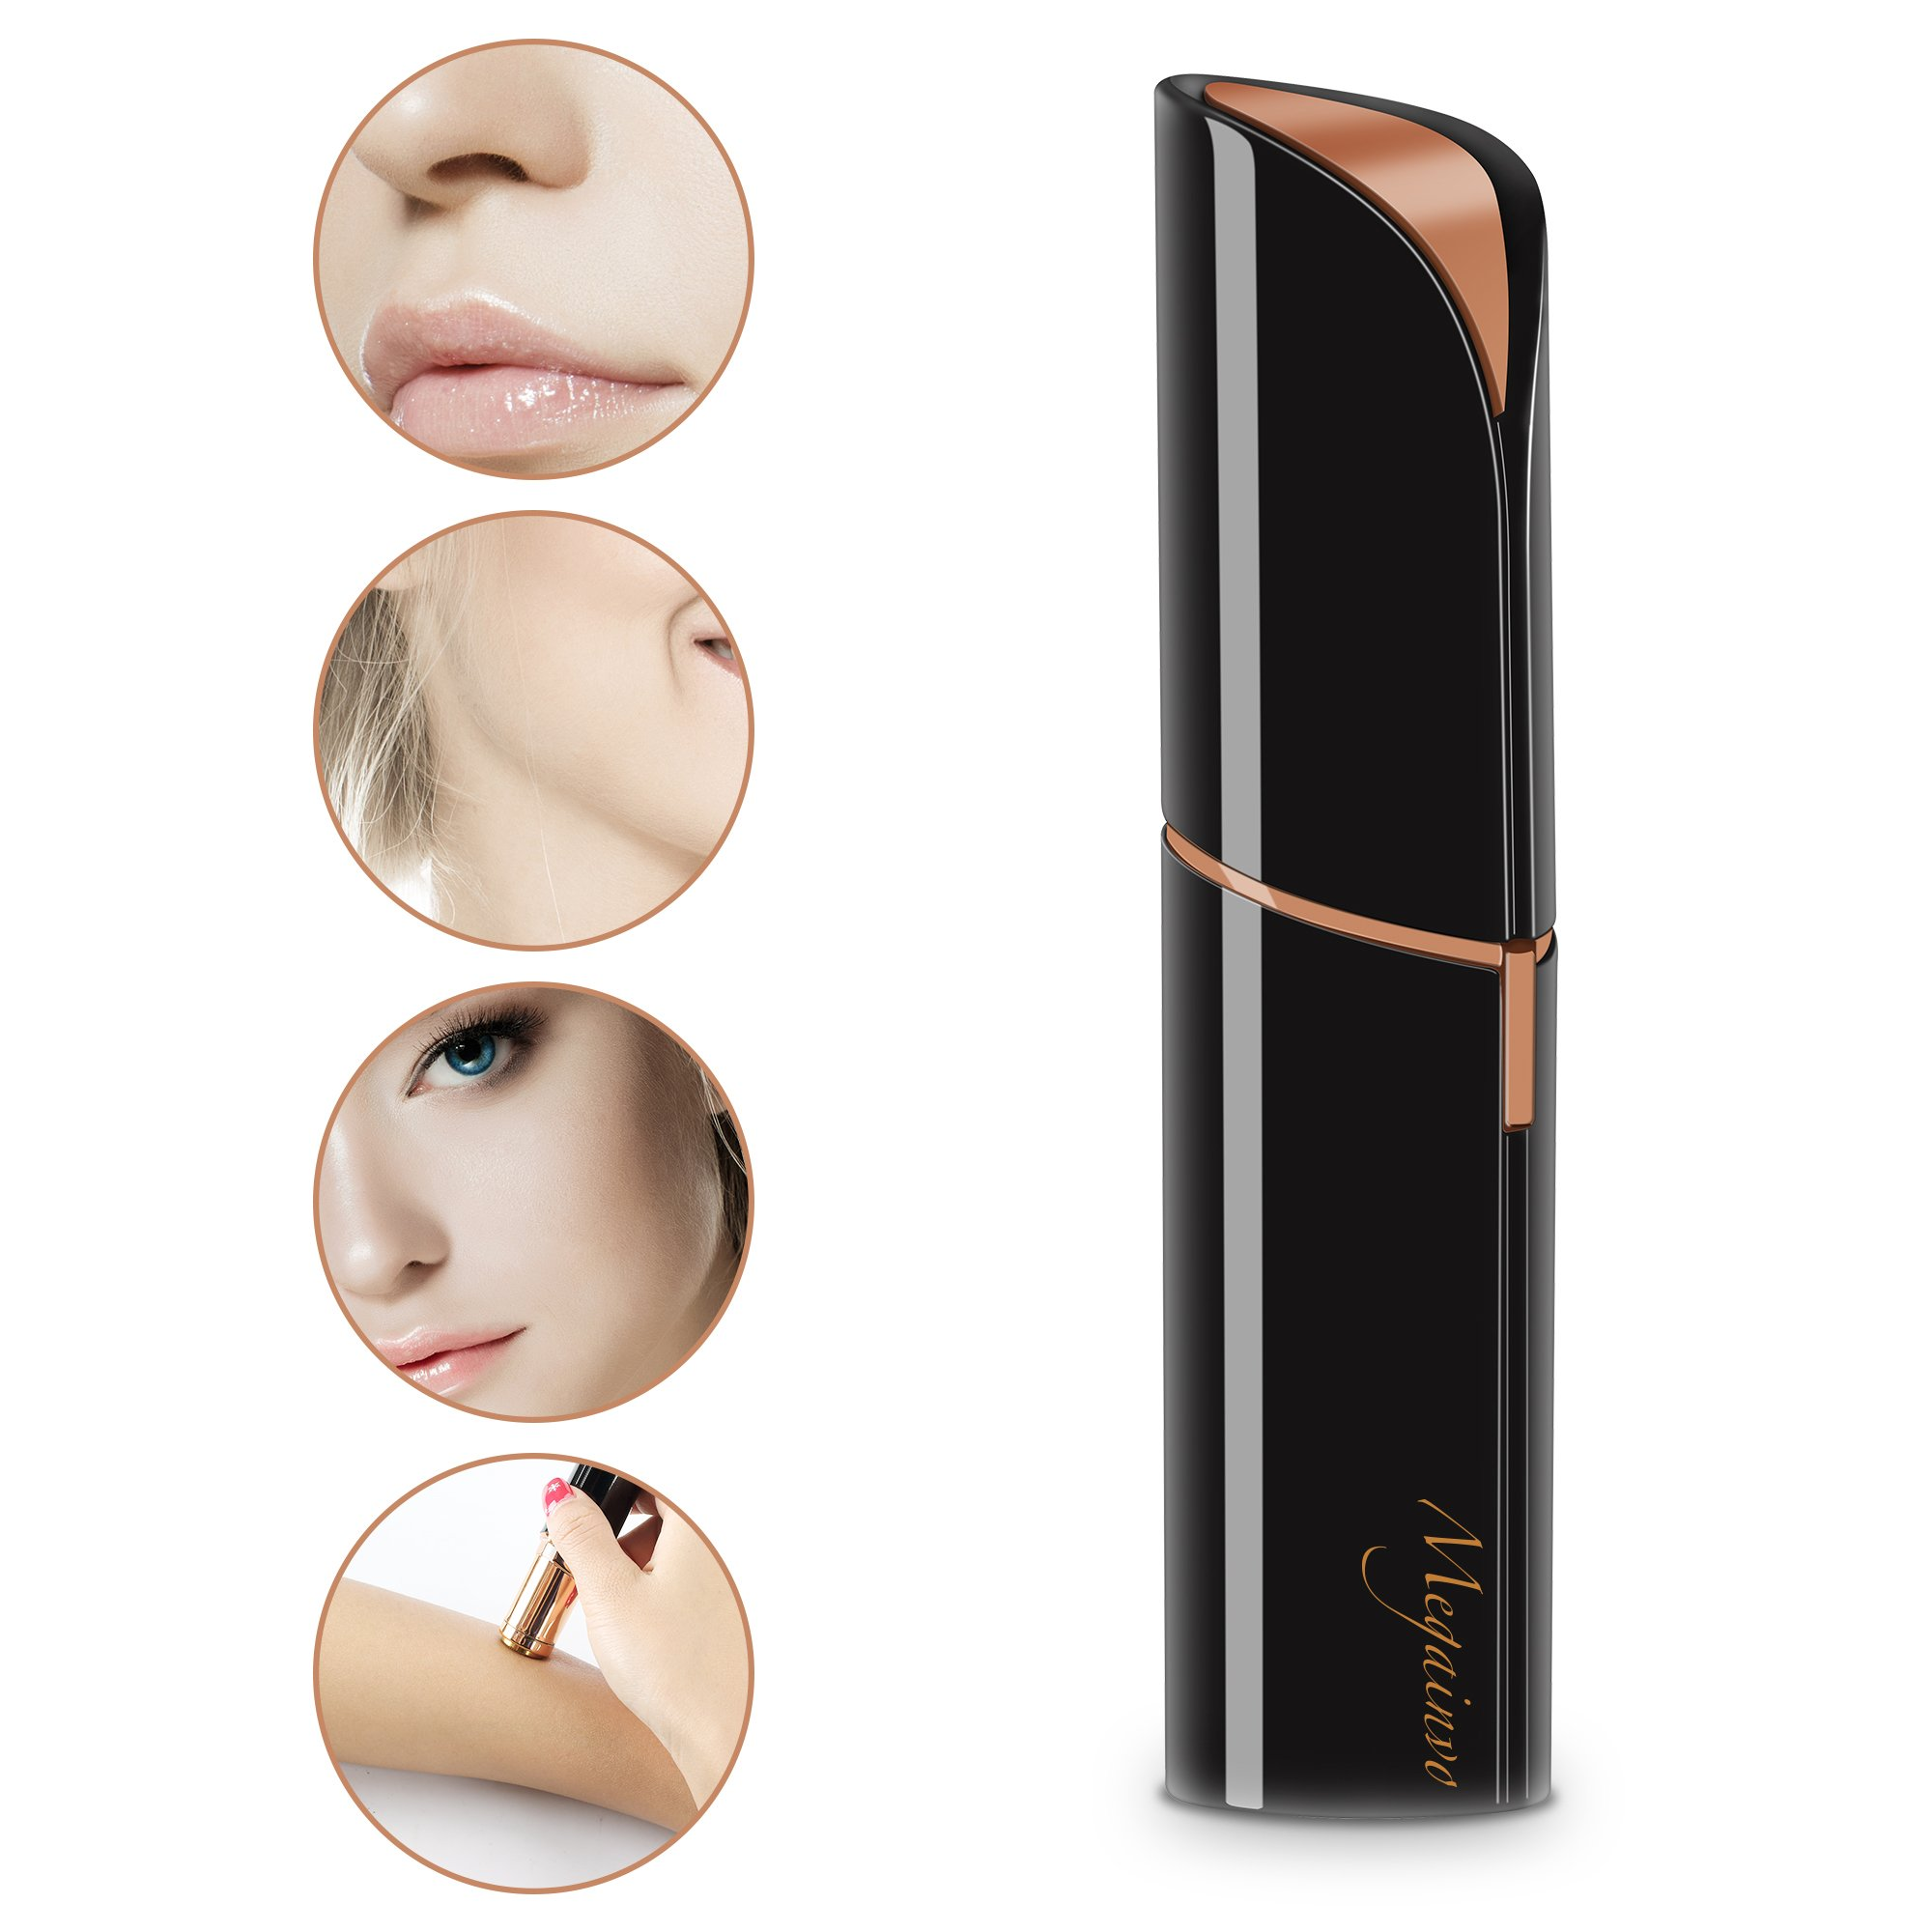 Facial Hair Removal, Megainvo Flawless Hair Removal Portable Painless Mini Discrete Hair Remover for Face, Bikini, Lip-USB Rechargeable